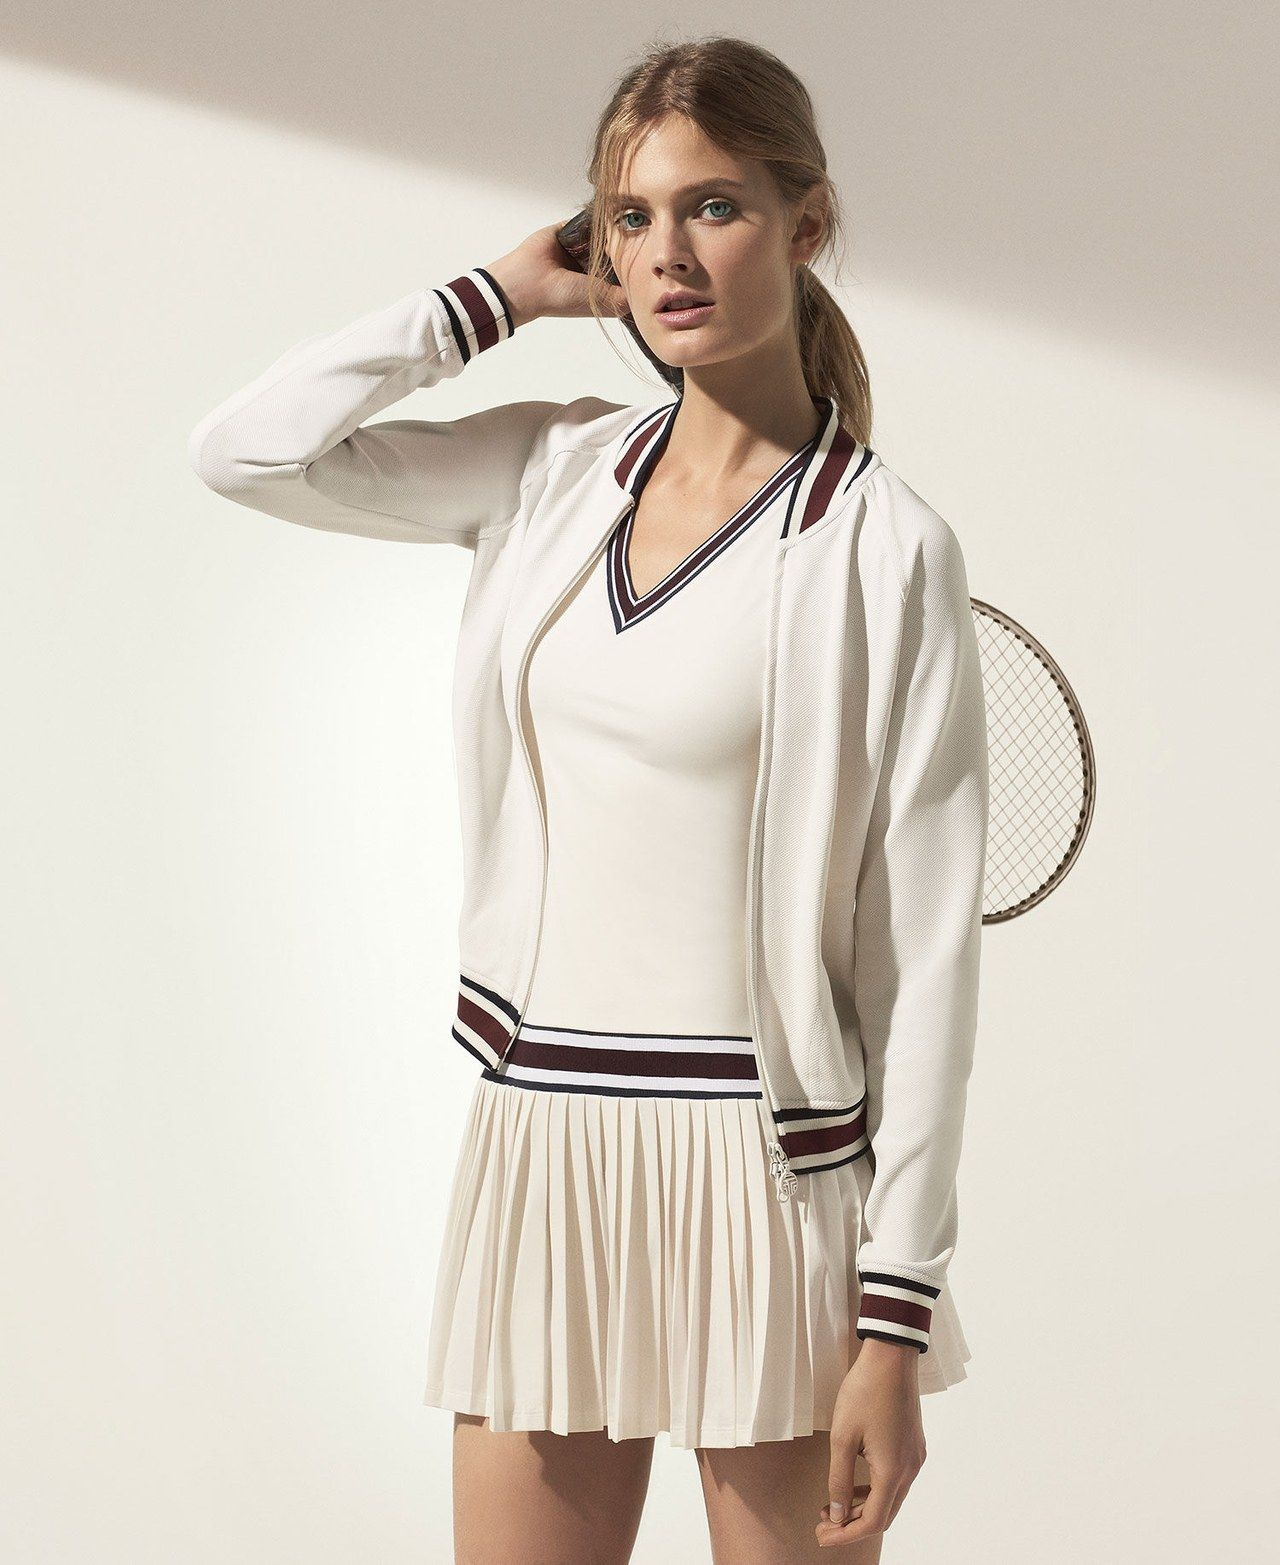 Tory Burch Has Her Own Take on Athleisure, and We're Obsessed